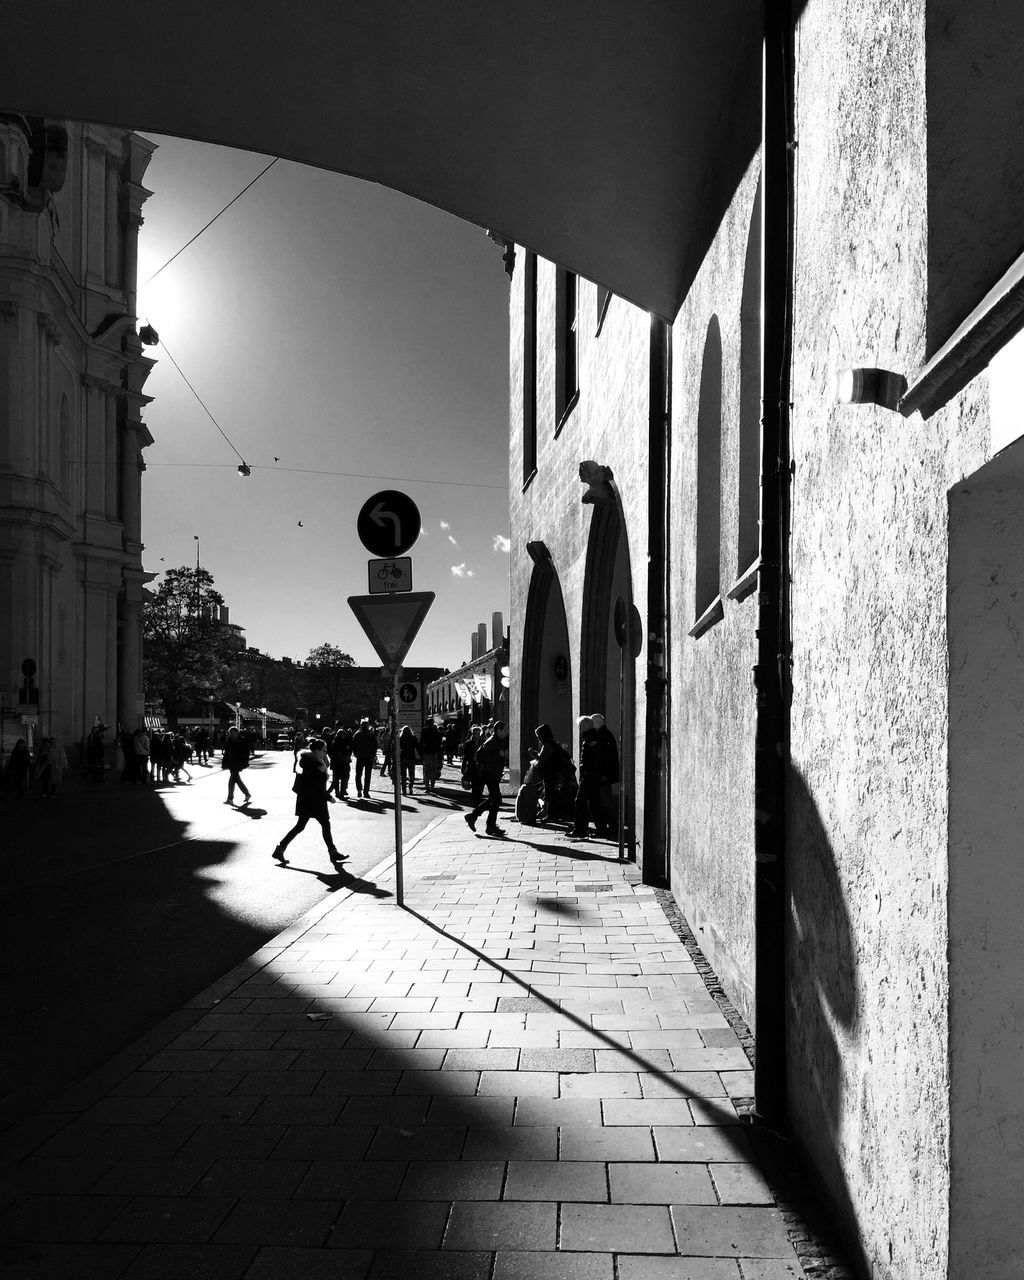 architecture, built structure, building exterior, sunlight, shadow, real people, architectural column, day, outdoors, men, lifestyles, women, city, sky, people